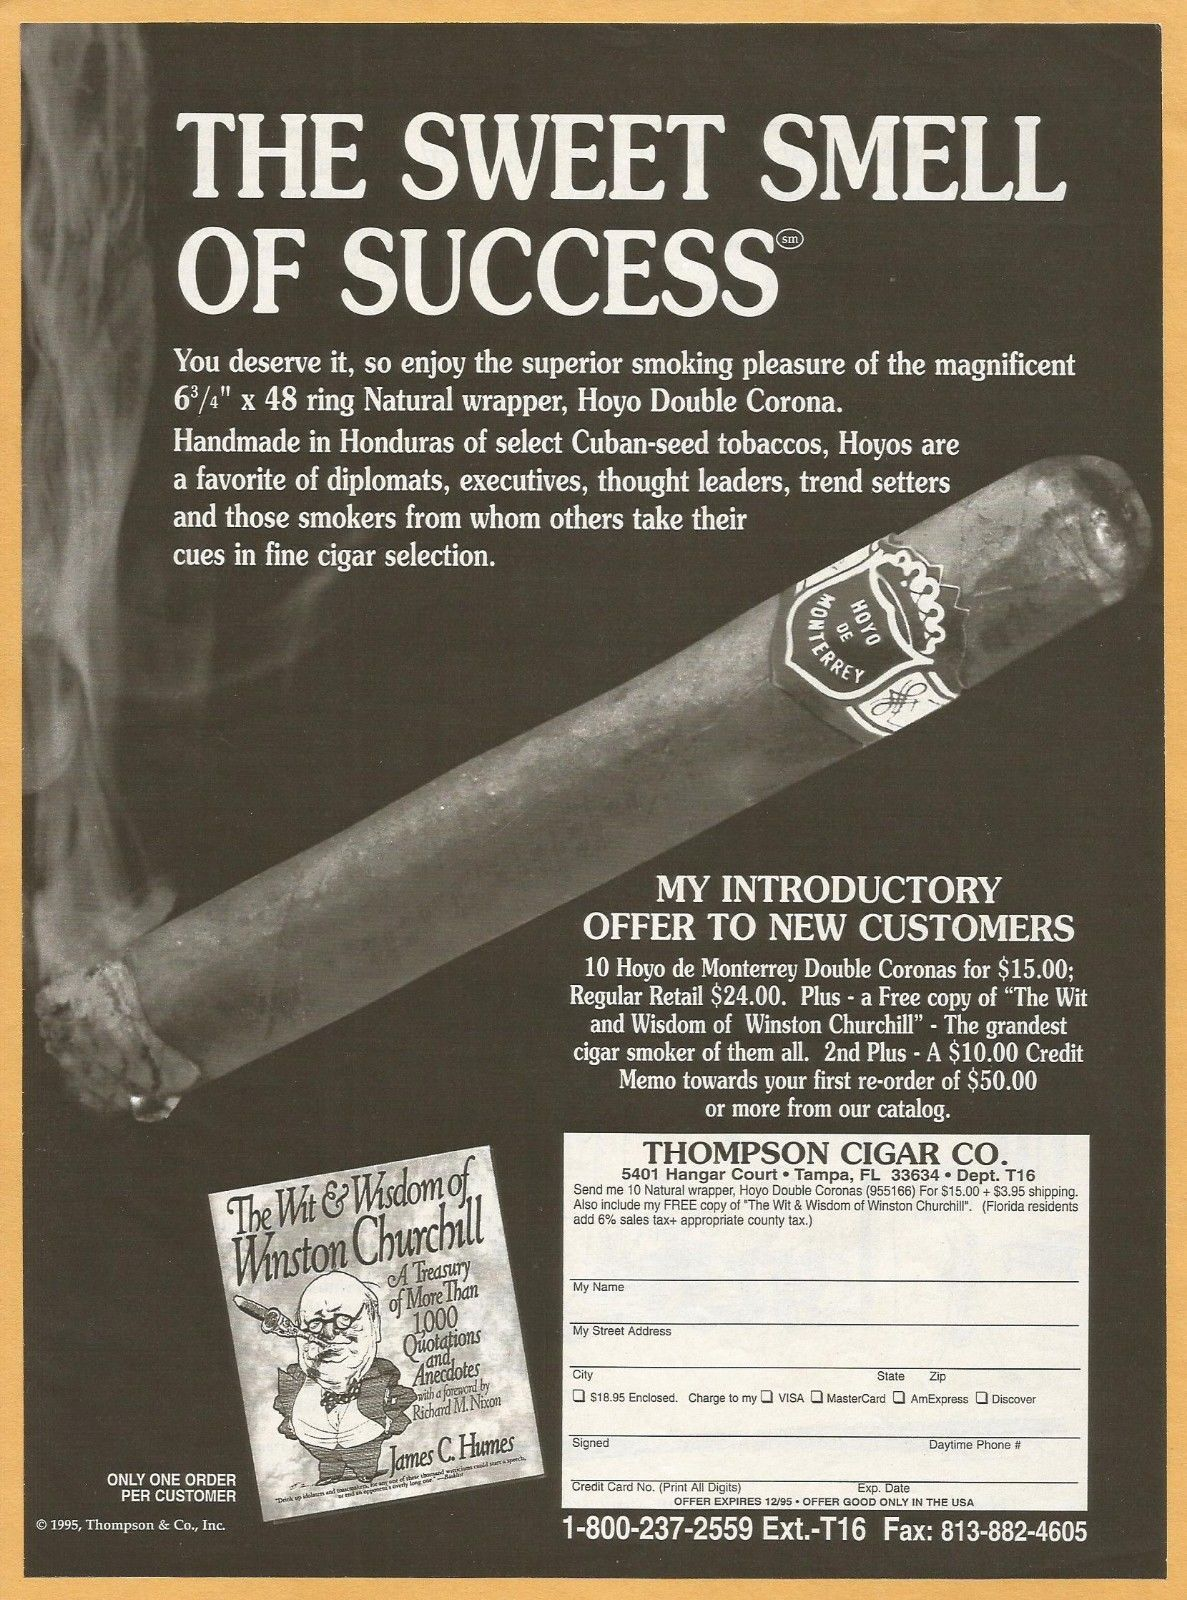 thompson-cigar-co-the-sweet-smell-of.jpg